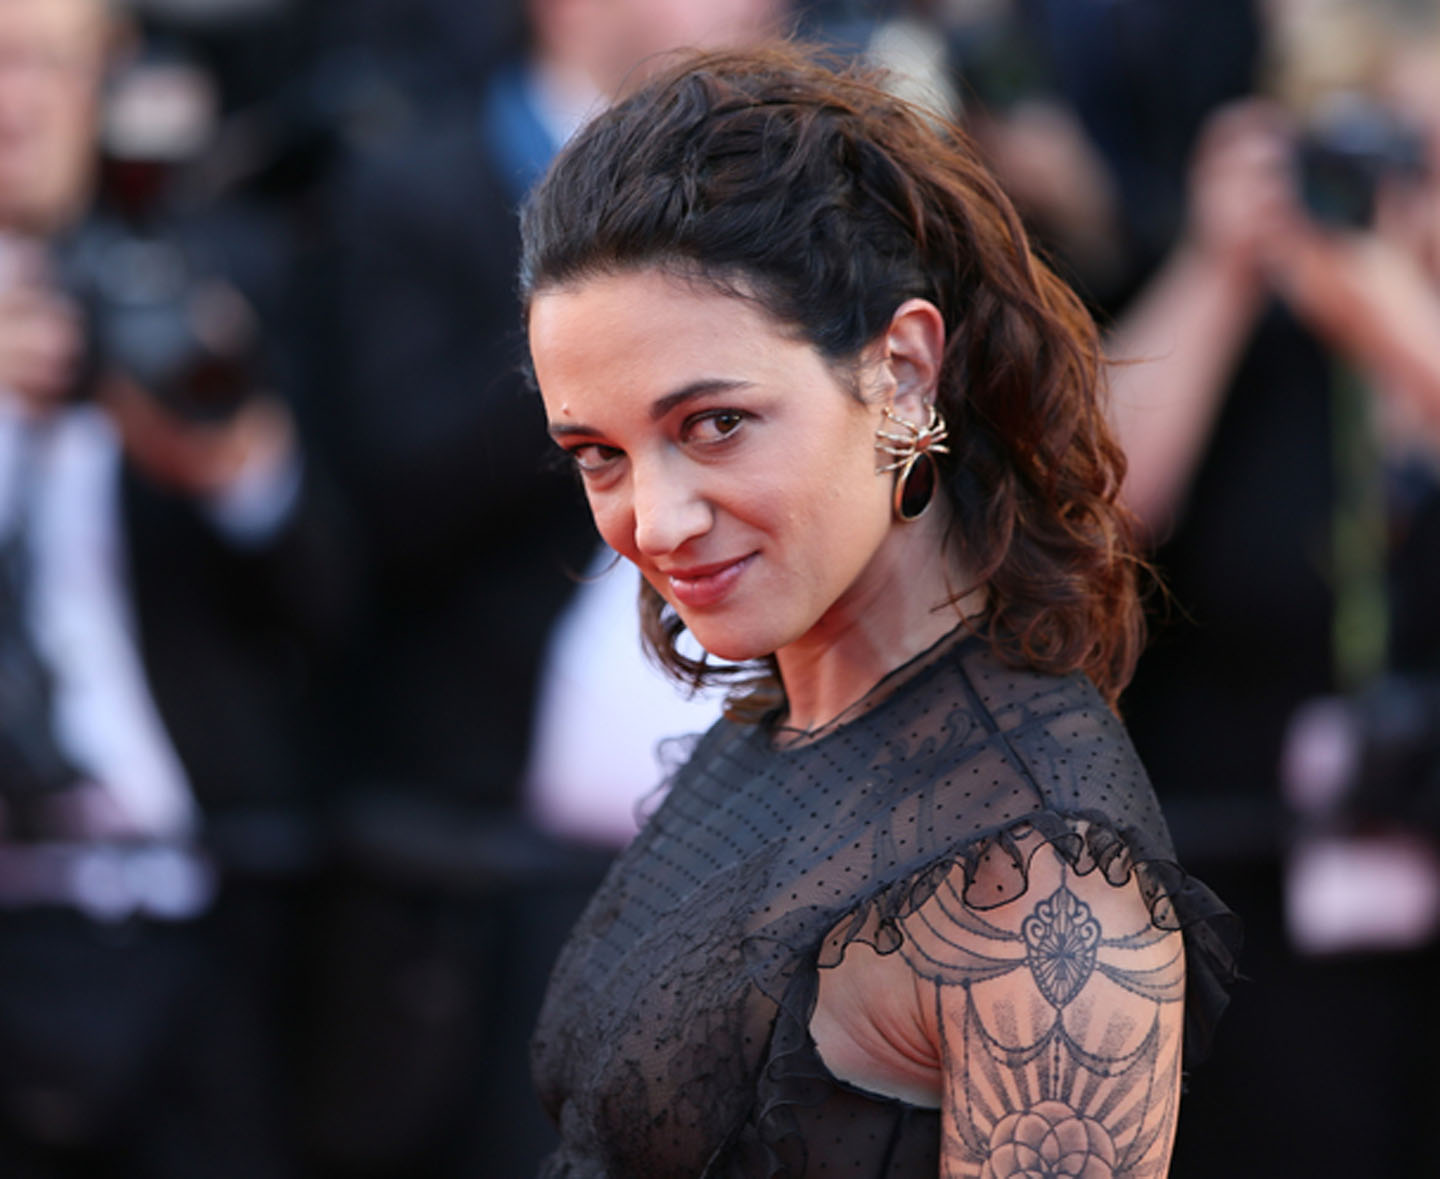 Asia Argento is in the center ofa sexual misconduct alligation by then minor, actor Jimmy Bennett.